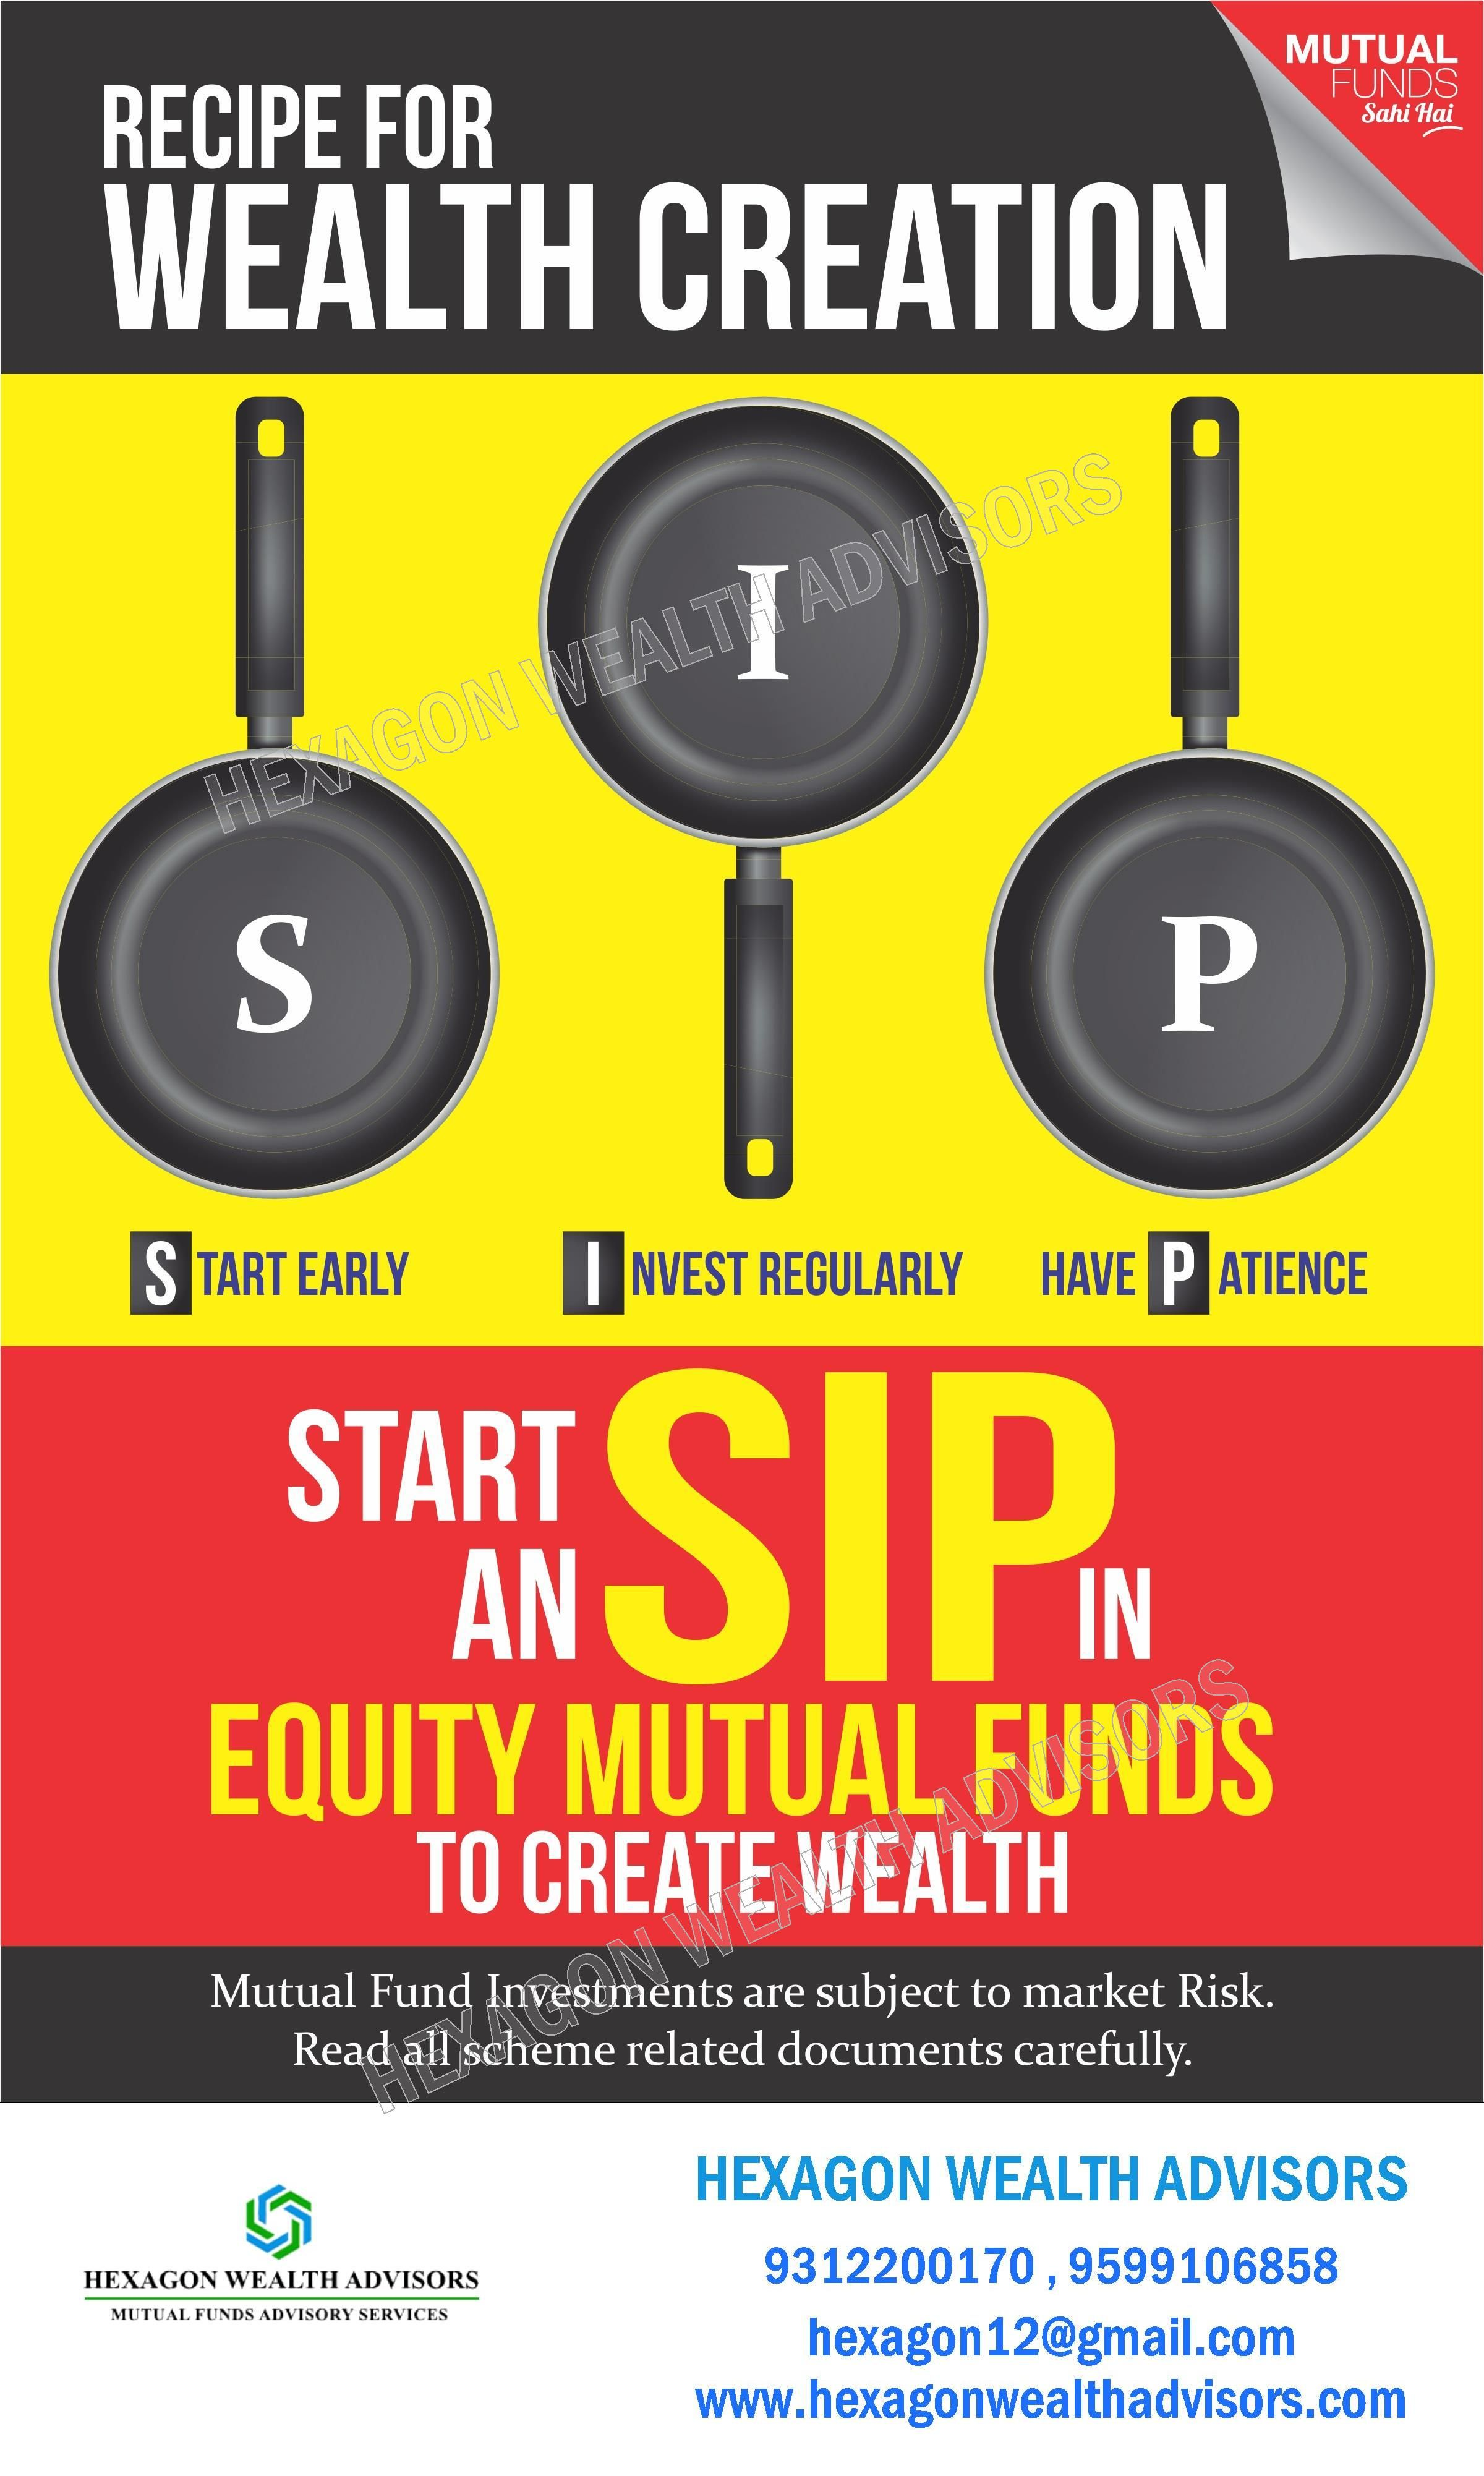 Get yourself the best mutual funds consultant to invest in